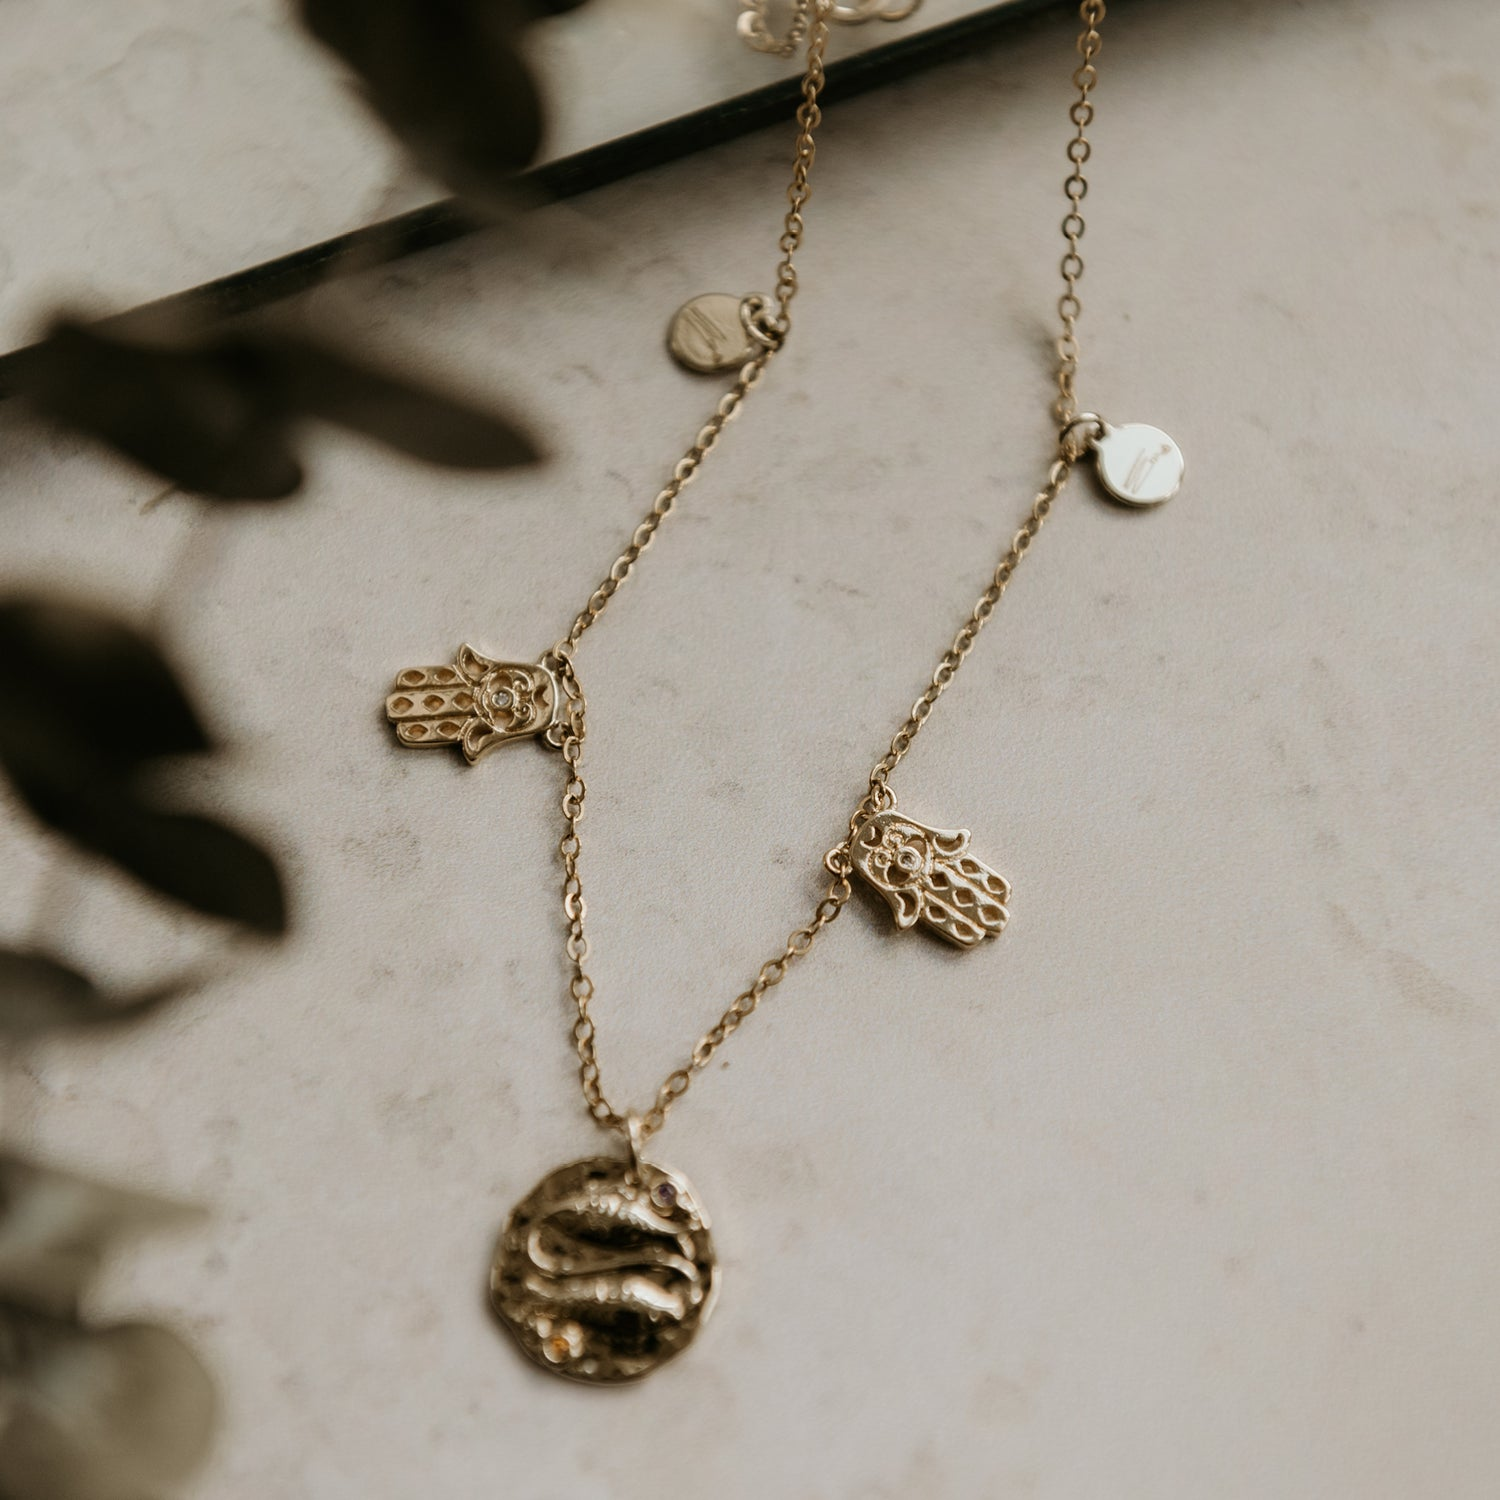 Image of Starsign & Fatimas Hand Necklace